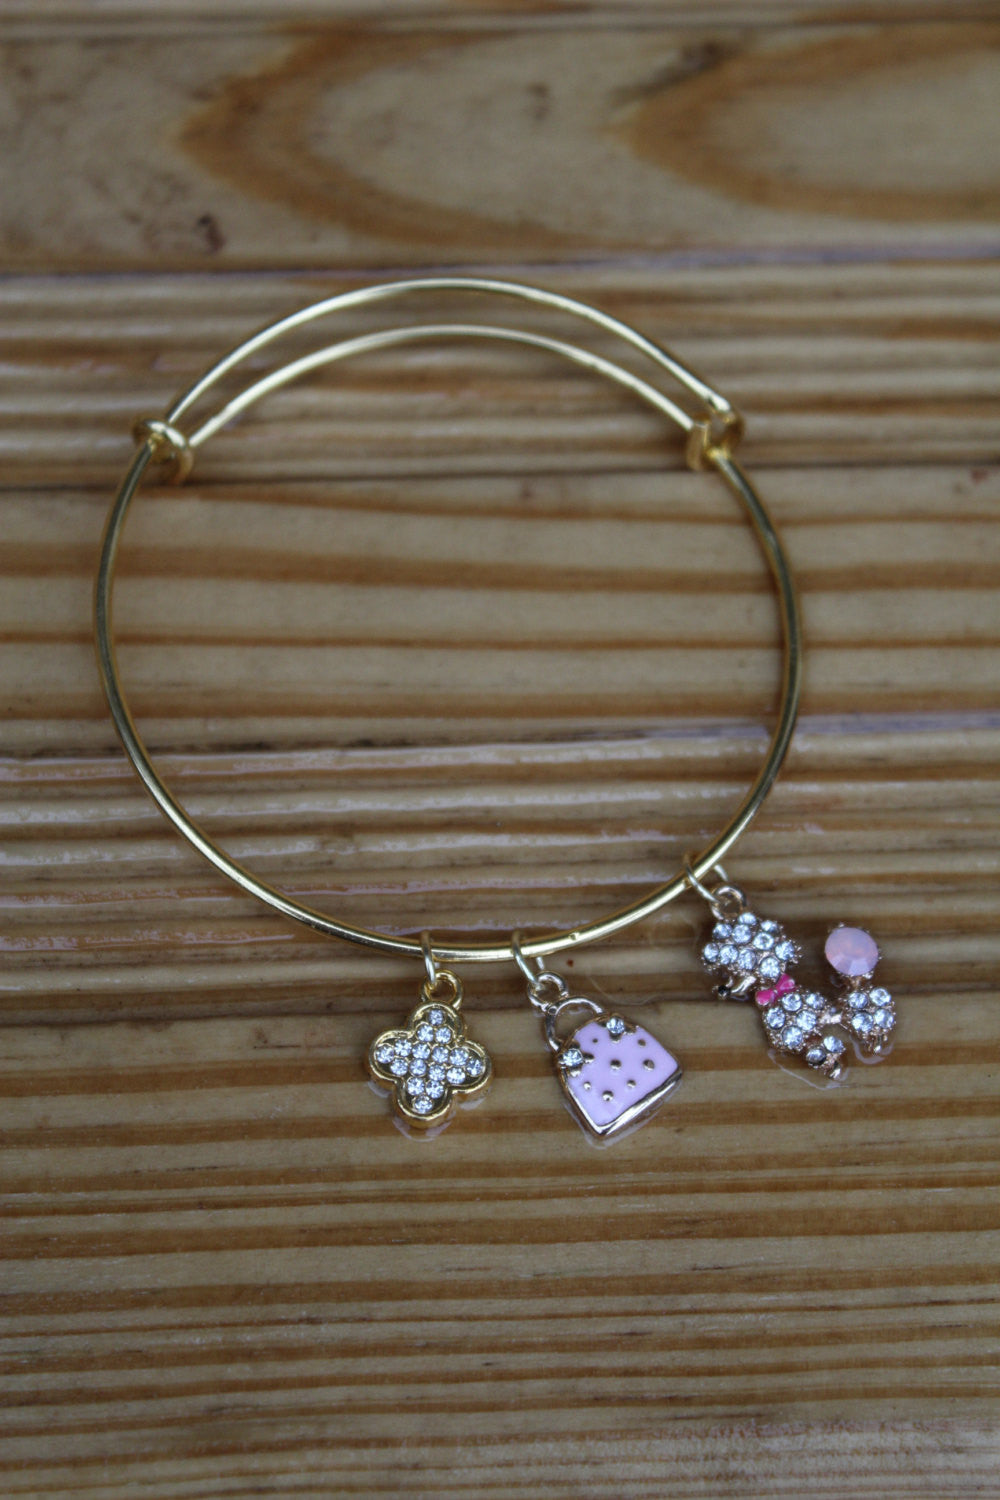 Women's Sparkle Poodle and Pink Purse Gold Bangle Bracelet - JTB15002